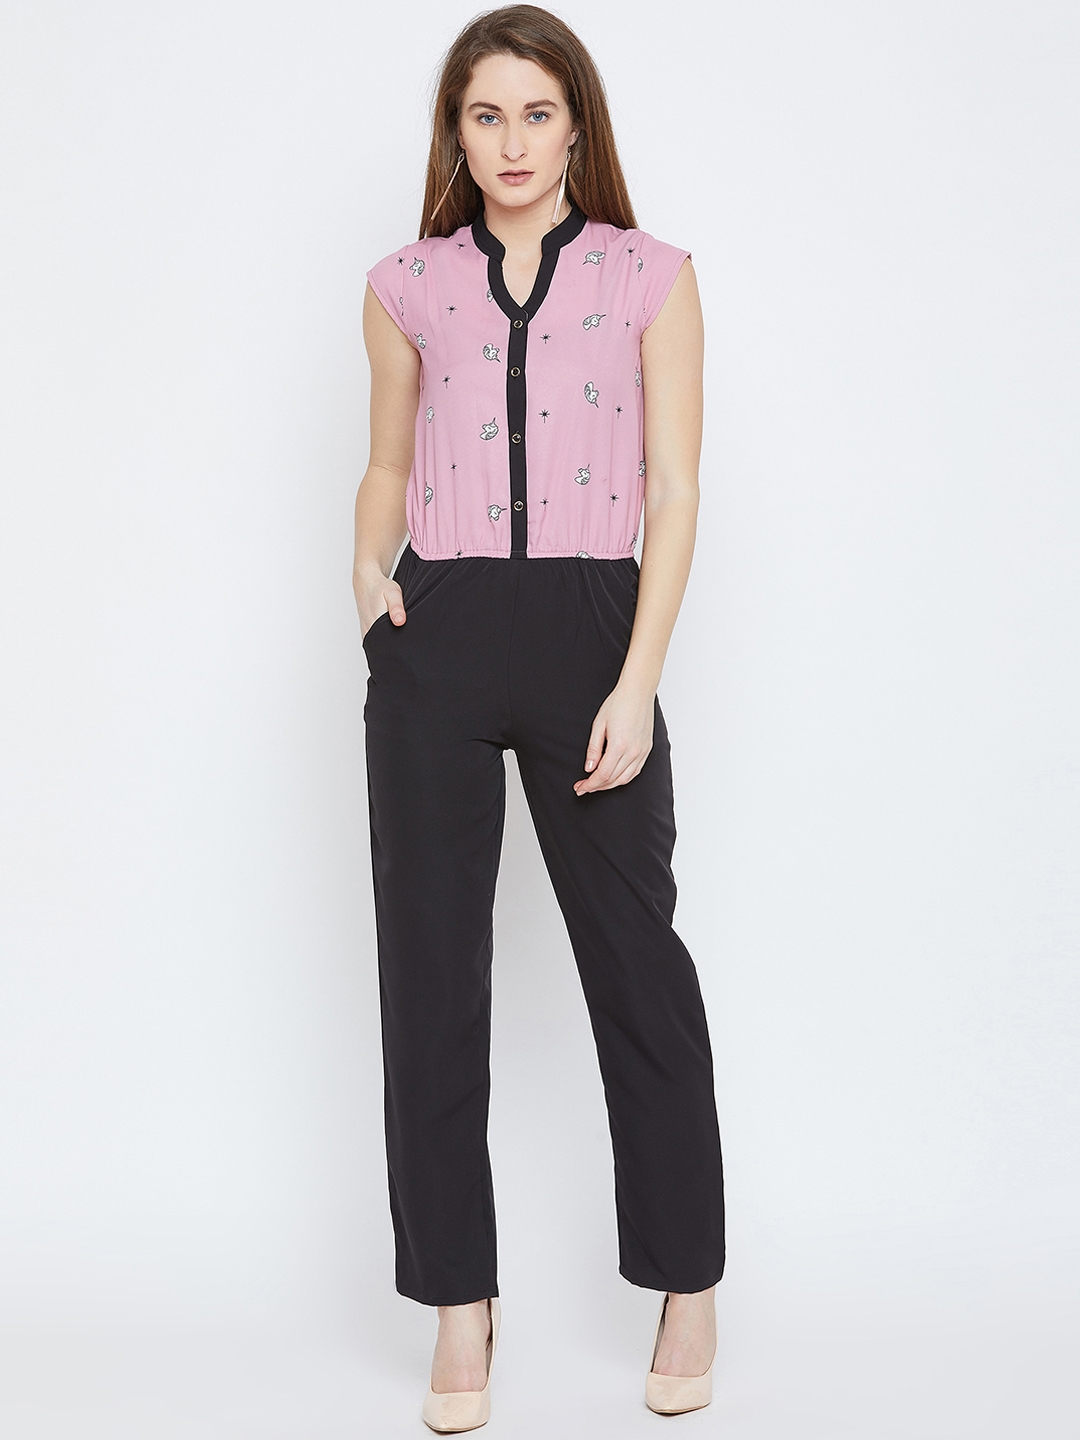 Ruhaans Women Pink & Black Printed Basic Jumpsuit